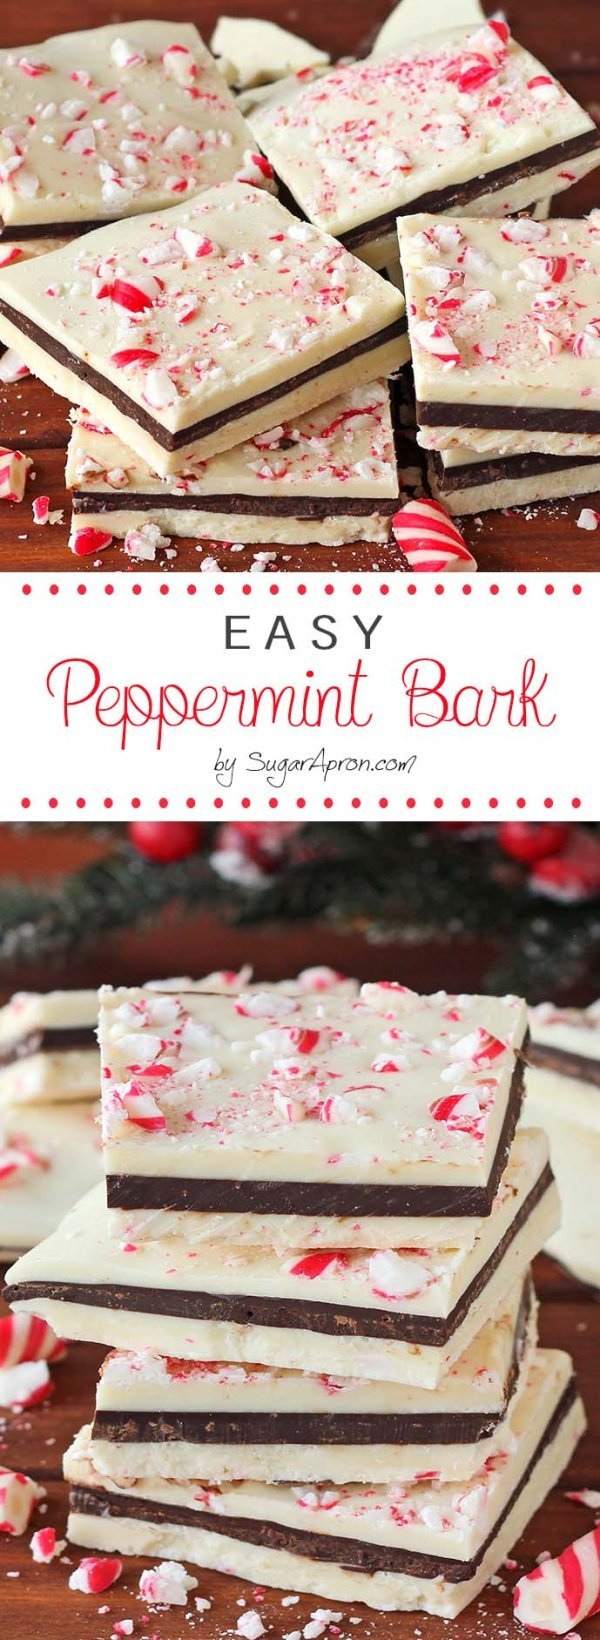 Peppermint bark are perfect holiday treats.